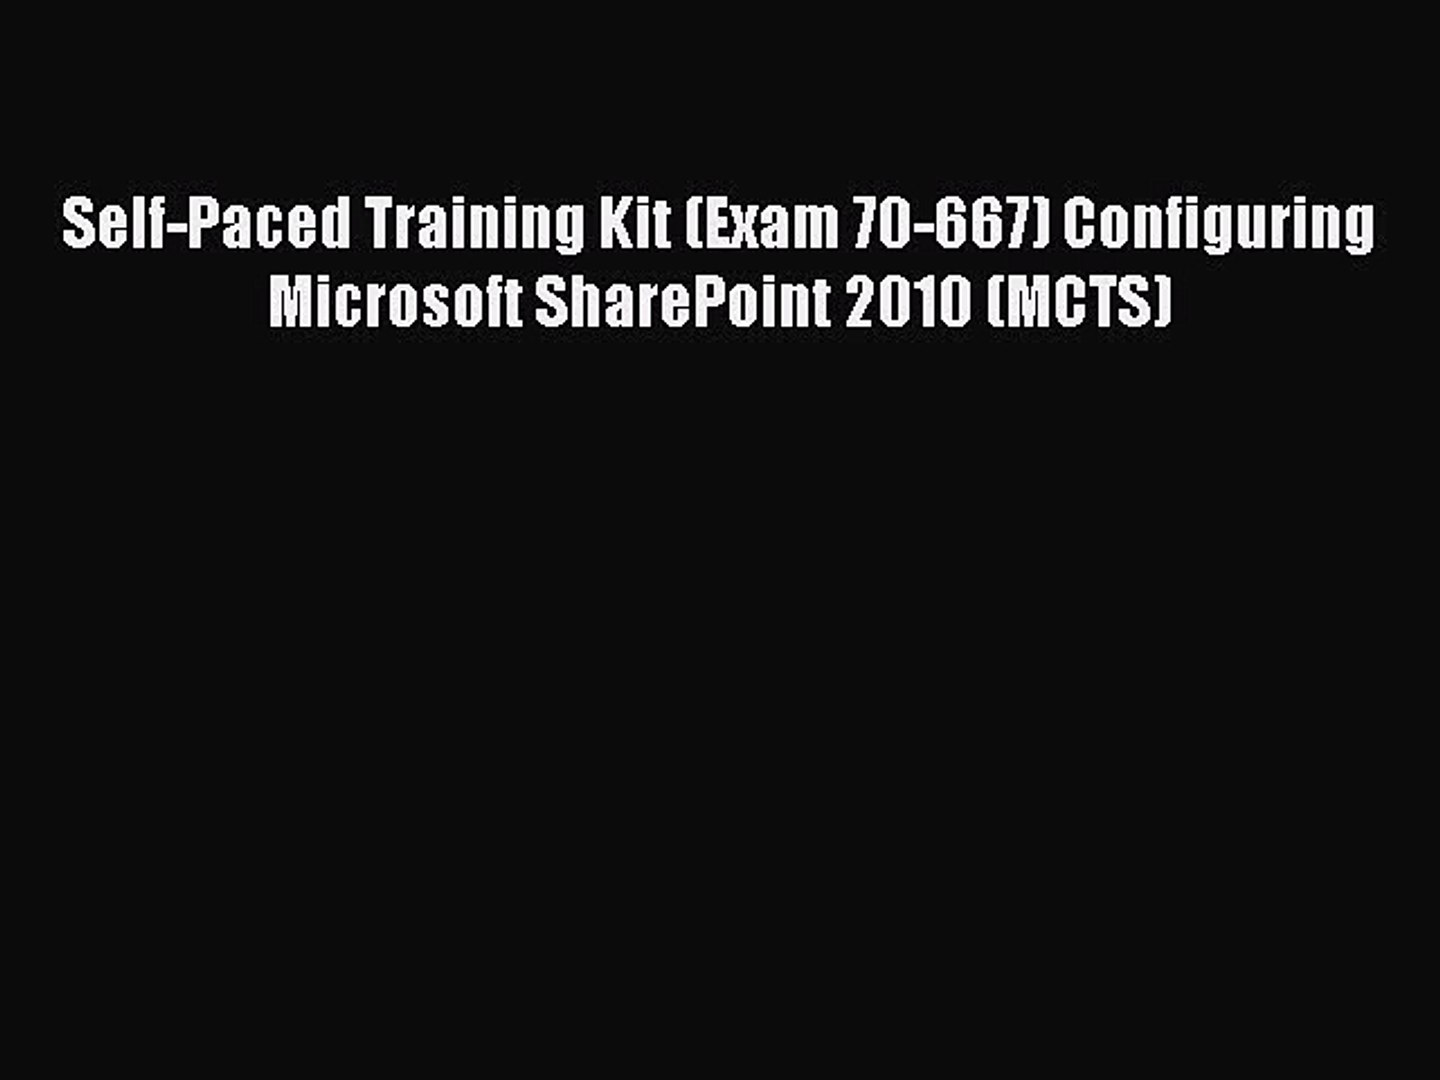 [PDF Download] Self-Paced Training Kit (Exam 70-667) Configuring Microsoft SharePoint 2010